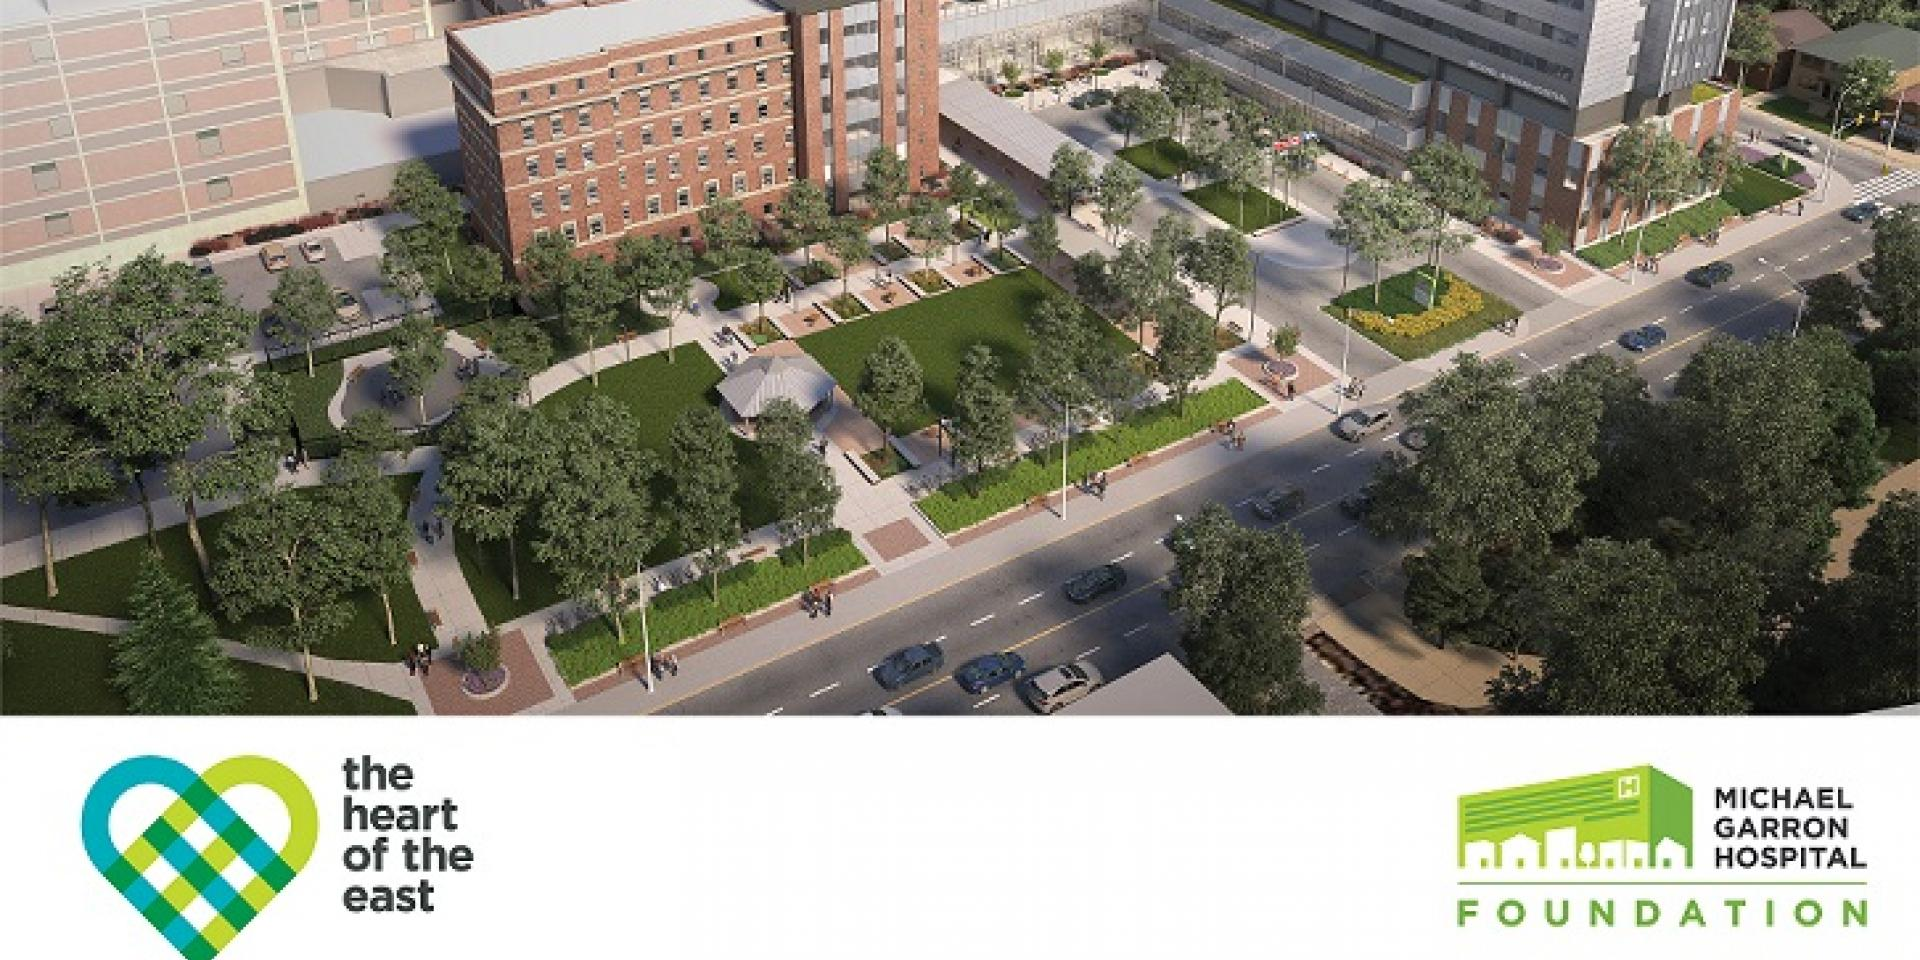 Architect's renderings of the new hospital campus